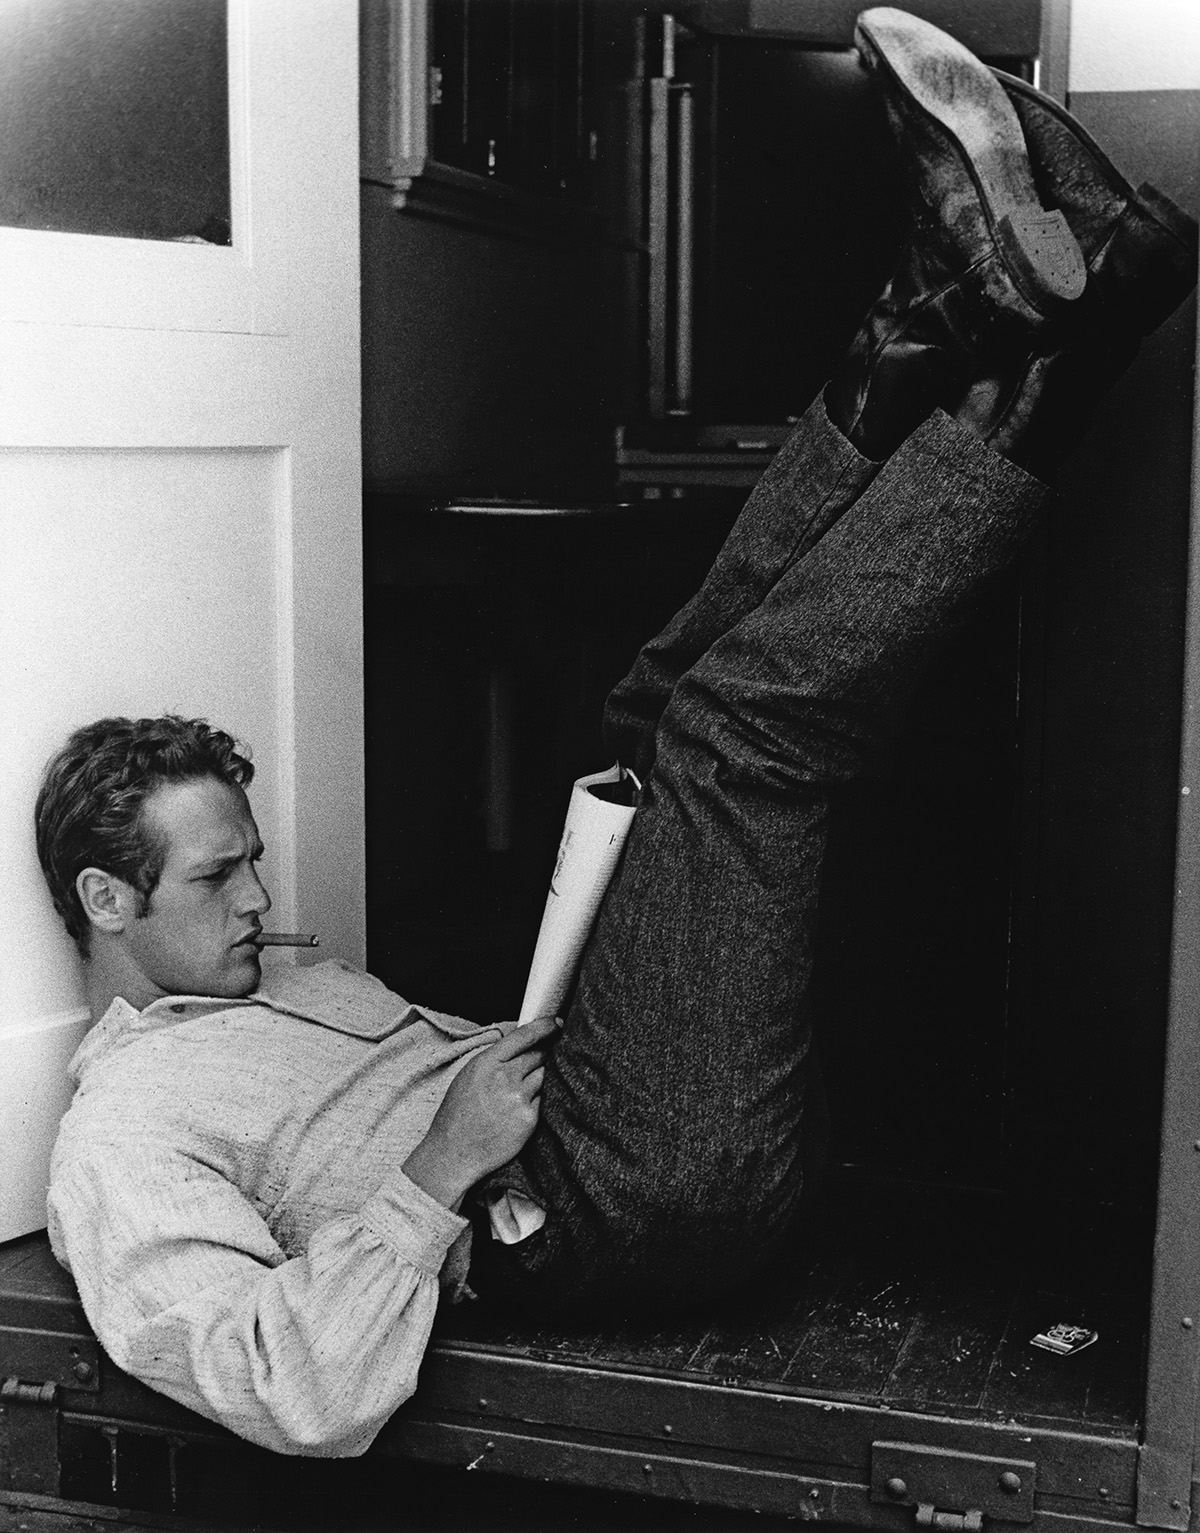 JOHN R. HAMILTON (1923-1997) Paul Newman, outside the door of his dressing room at Warner Bros. Studio, on a break from filming The Lef